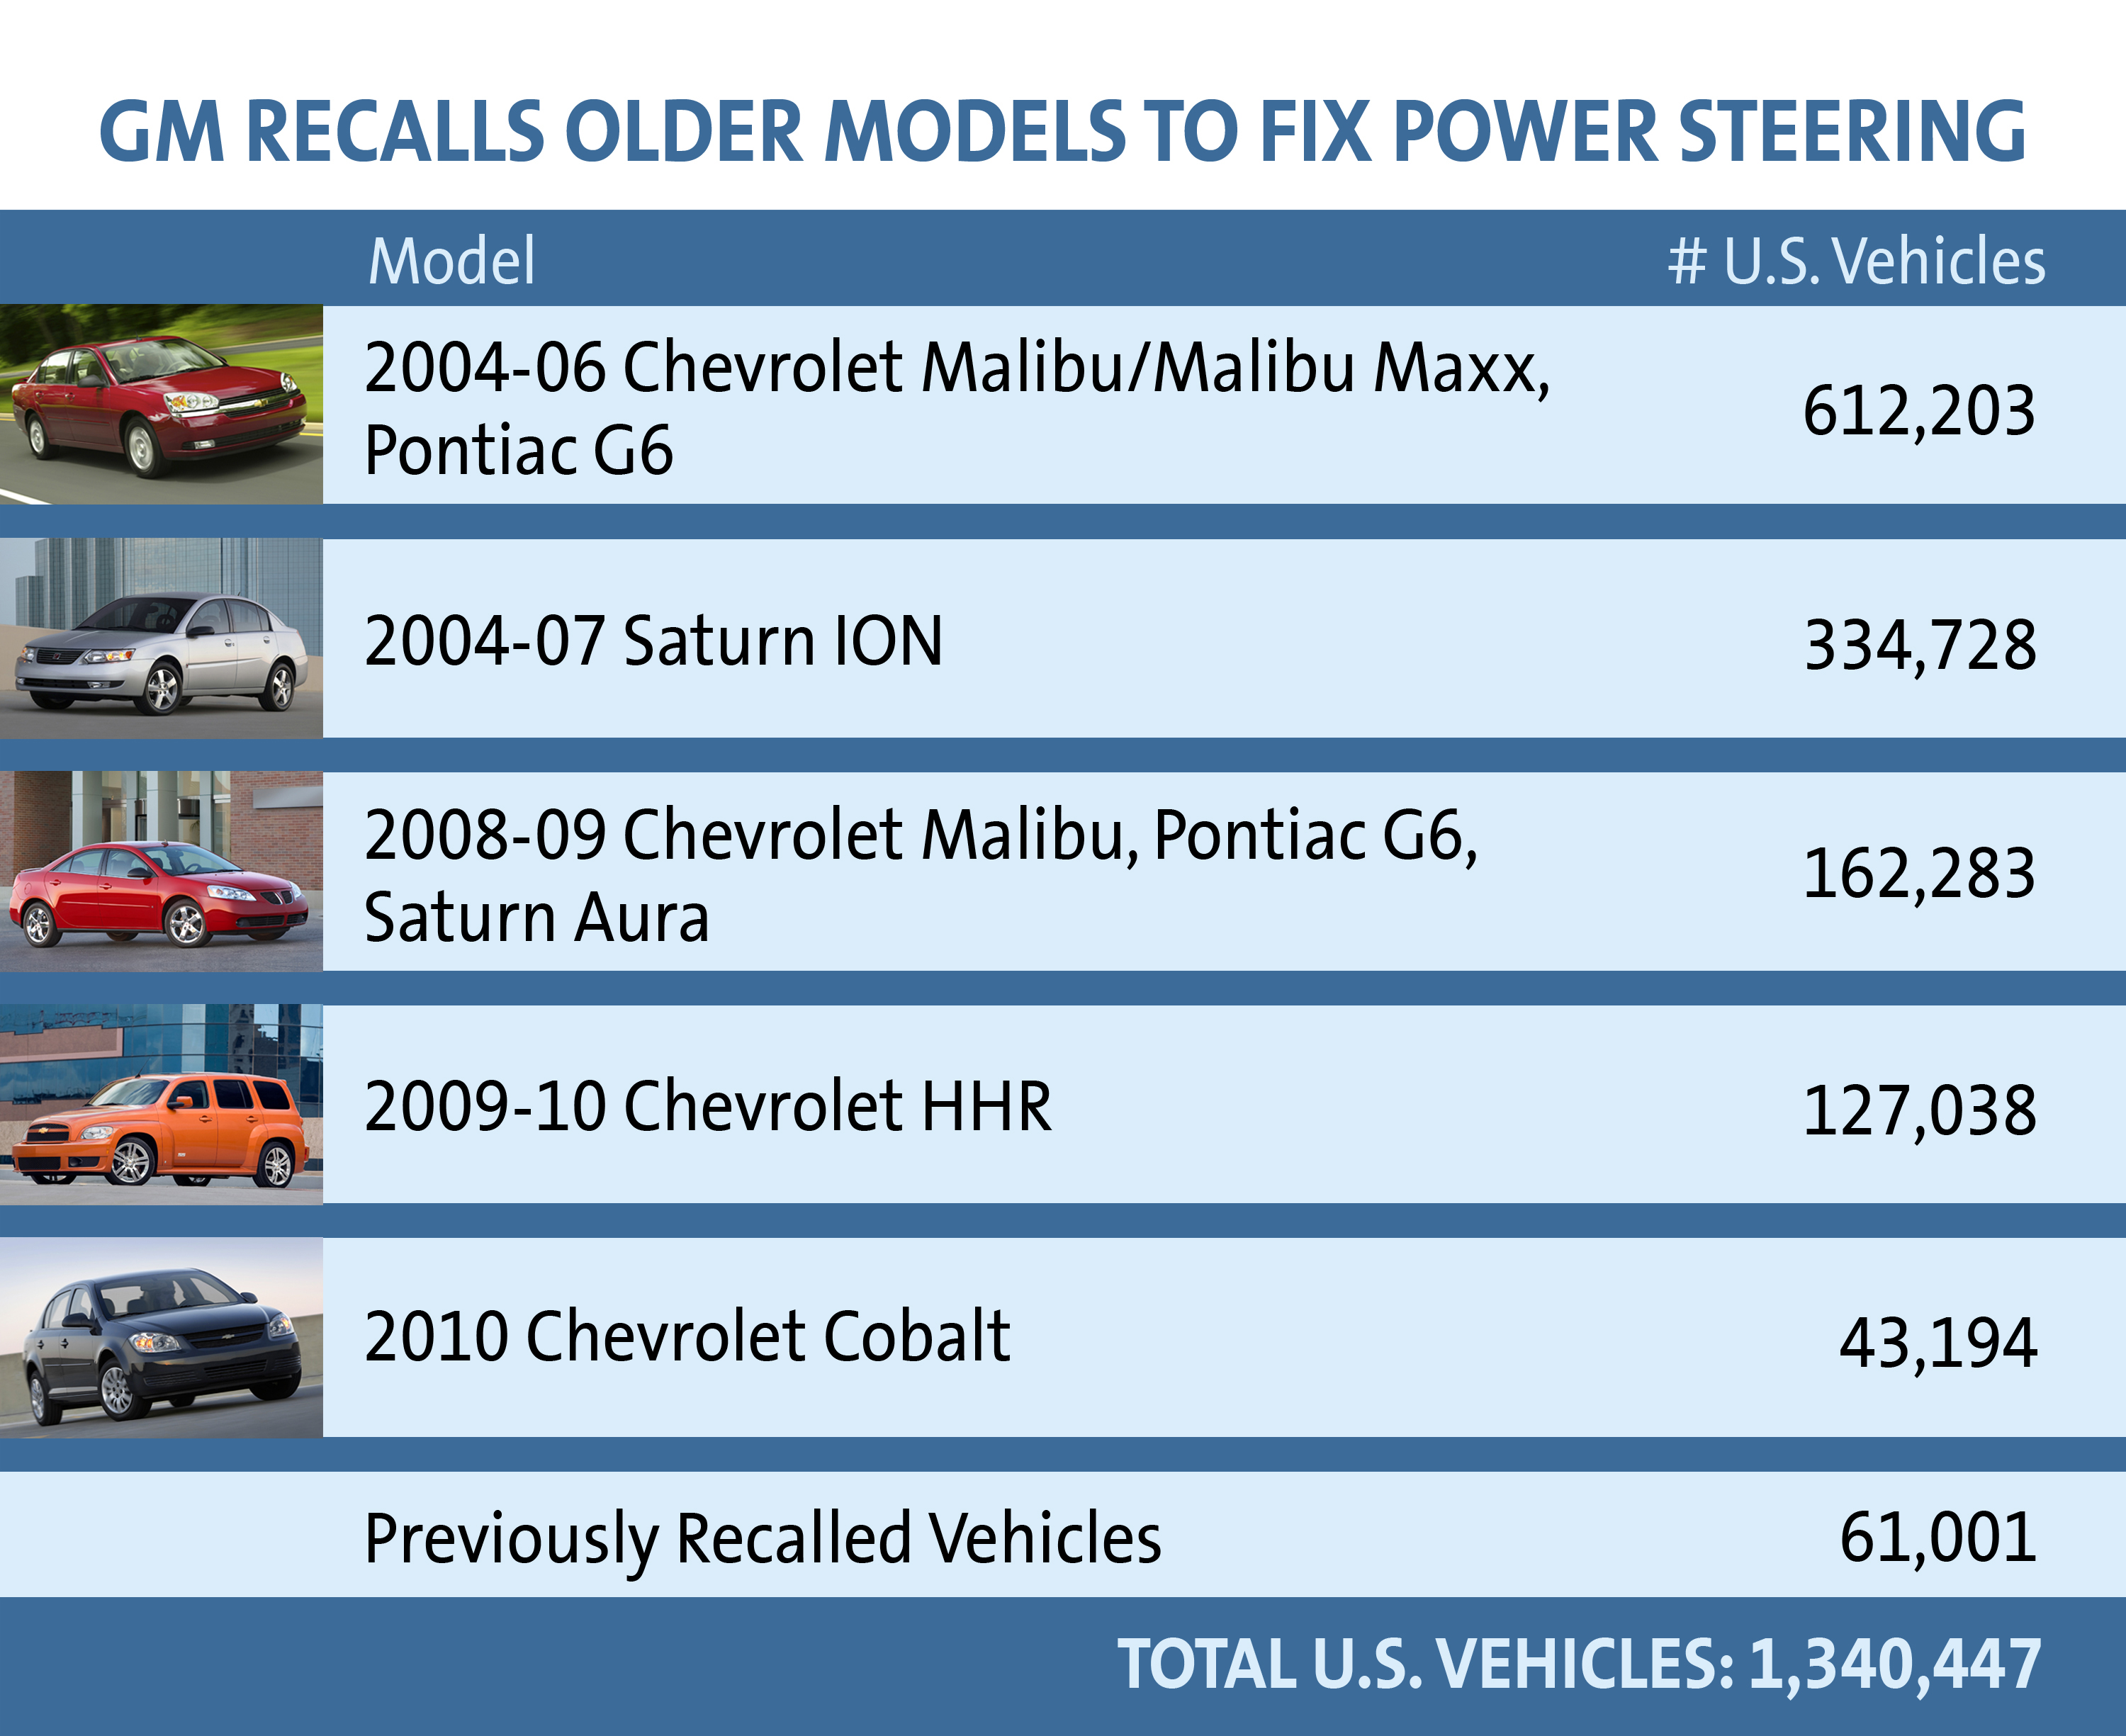 GM Recalls Older Model Vehicles to Fix Power Steering on 2006 taurus wiring diagram, 2006 escape wiring diagram, 2006 town car wiring diagram, 2006 tahoe wiring diagram, 2006 envoy wiring diagram, 2007 hhr wiring diagram, 2006 ranger wiring diagram, 2006 pilot wiring diagram, 2006 expedition wiring diagram, 2006 caprice wiring diagram, 2006 civic wiring diagram, 2006 grand caravan wiring diagram, 2006 pacifica wiring diagram, 2006 wrangler wiring diagram, 2006 prius wiring diagram, 2006 rendezvous wiring diagram, 2006 escalade wiring diagram, 2006 town & country wiring diagram, 2006 uplander wiring diagram, 2006 hhr repair diagrams,